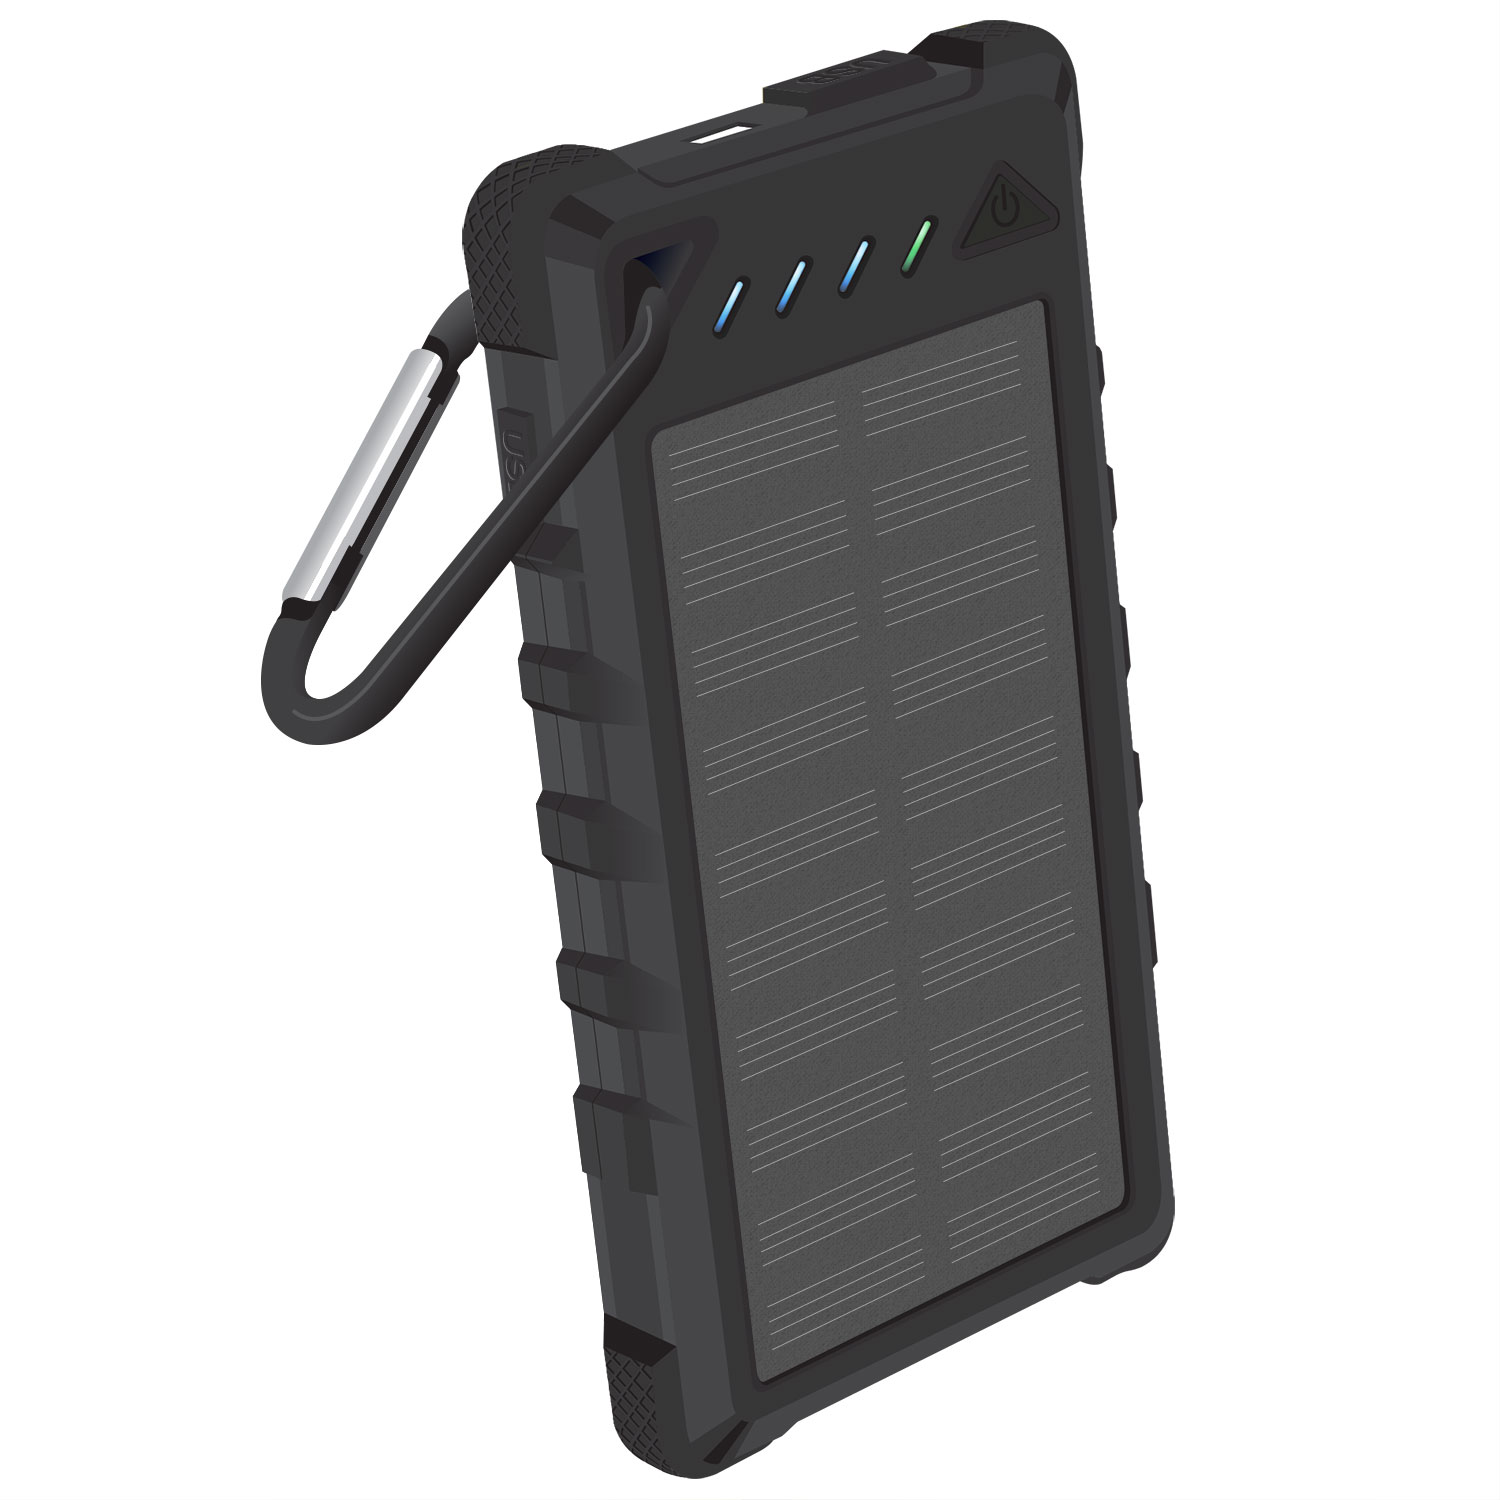 LG Intuition Solar Powered Portable PowerBank Black